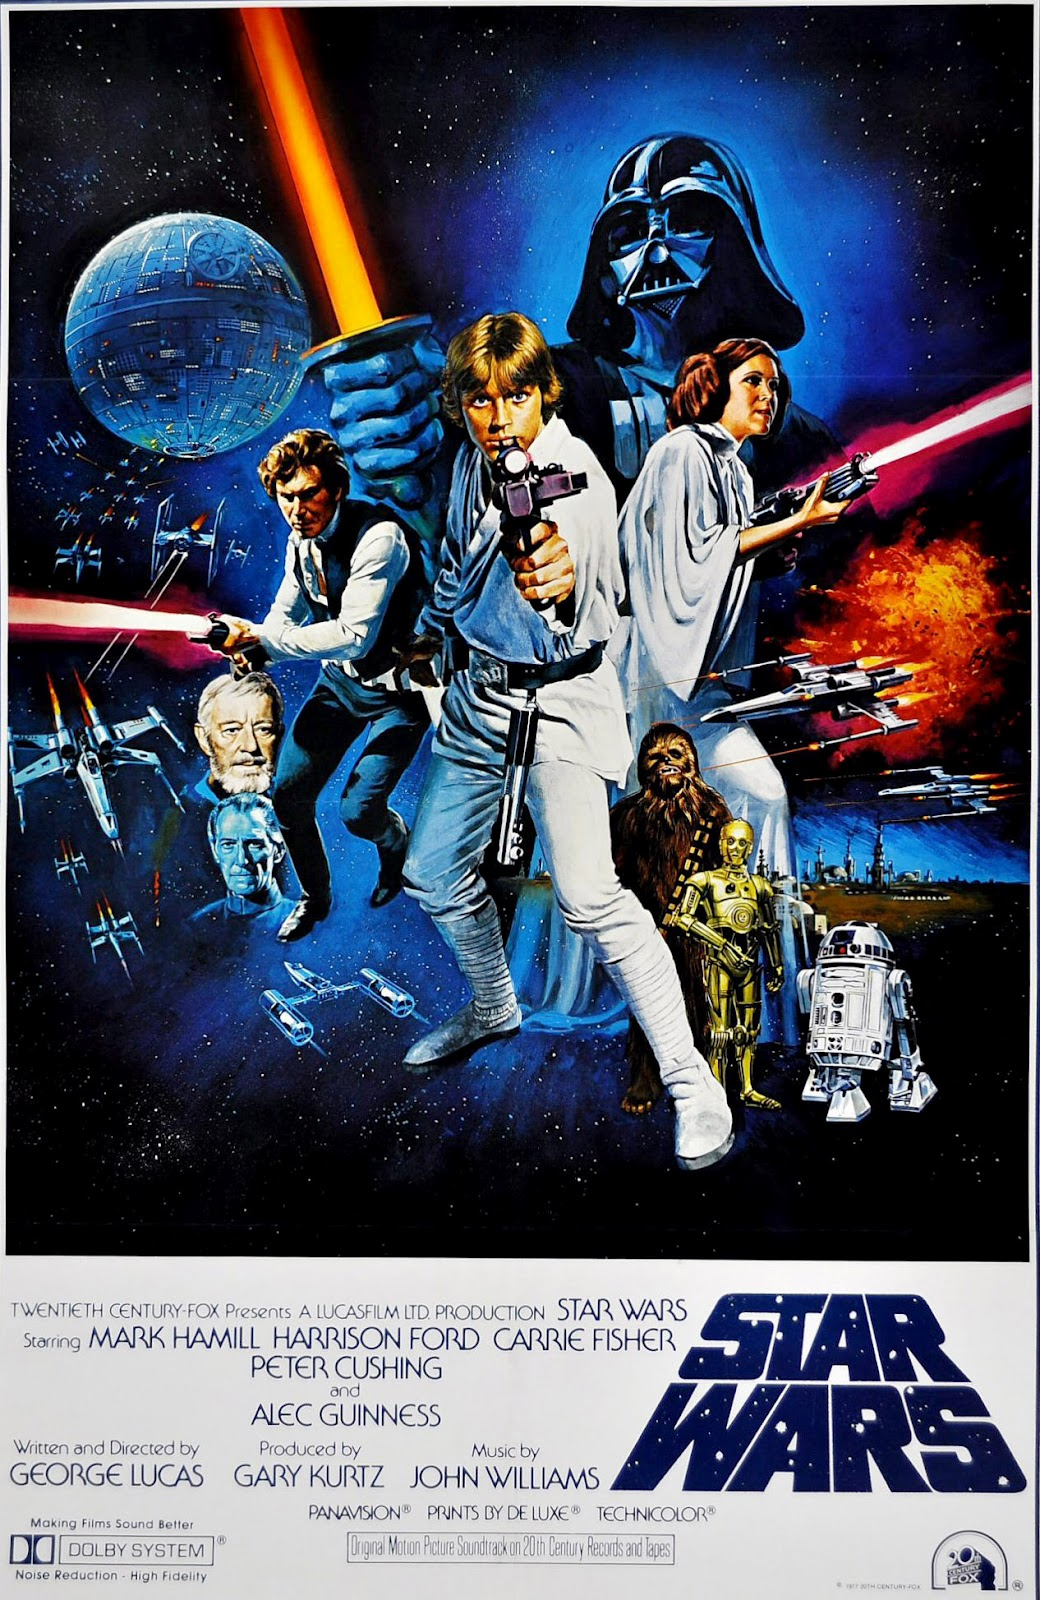 star_wars_episode_4_a_new_hope_poster_1977_01.jpg